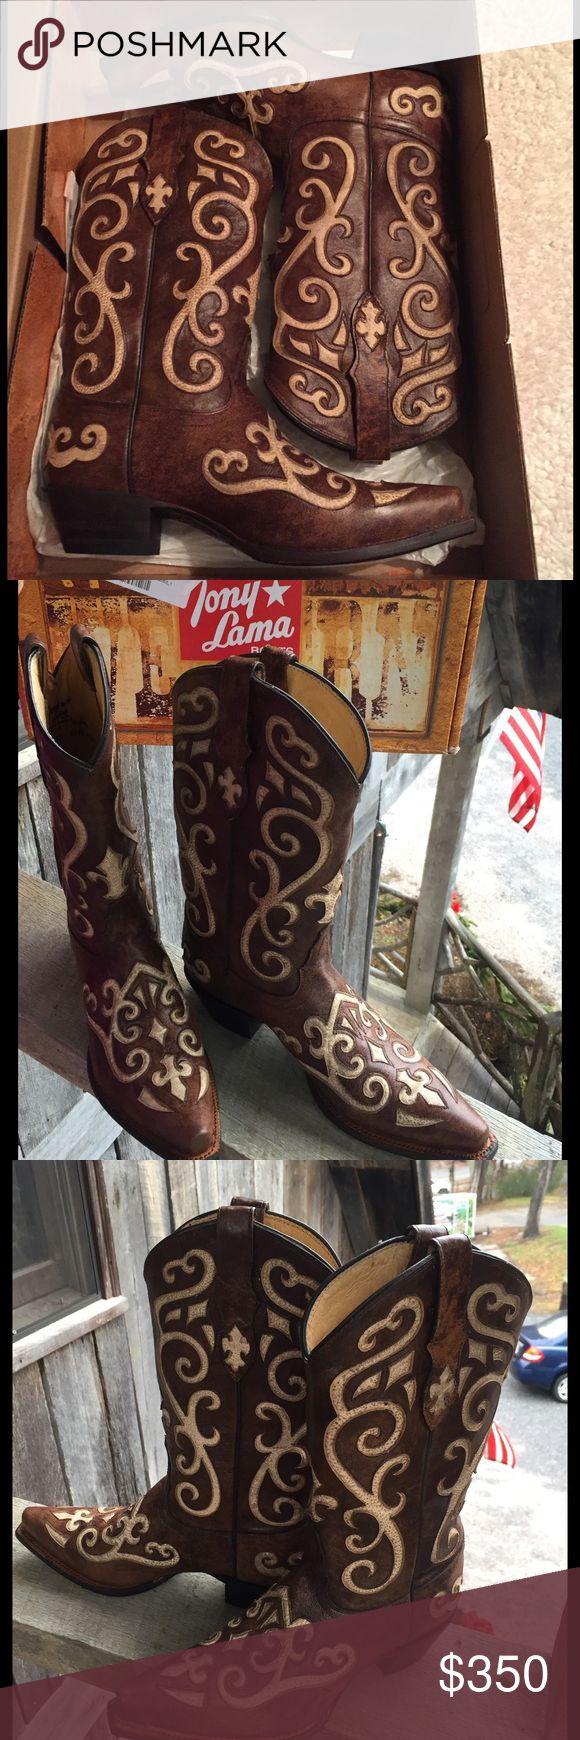 Tony Lama Leather Boot NIB. Women's SIZE- 8. Tony Lama Ladies Leather Vaquero Creme Inlay Boots.  Earth Santa Fe Style # VF3024  RETAIL- $350 These boots are amazingly intricate. They def stand out which is why I bought them.  -*PRICE FIRM*-  Tony Lama Tony Lama Shoes Over the Knee Boots